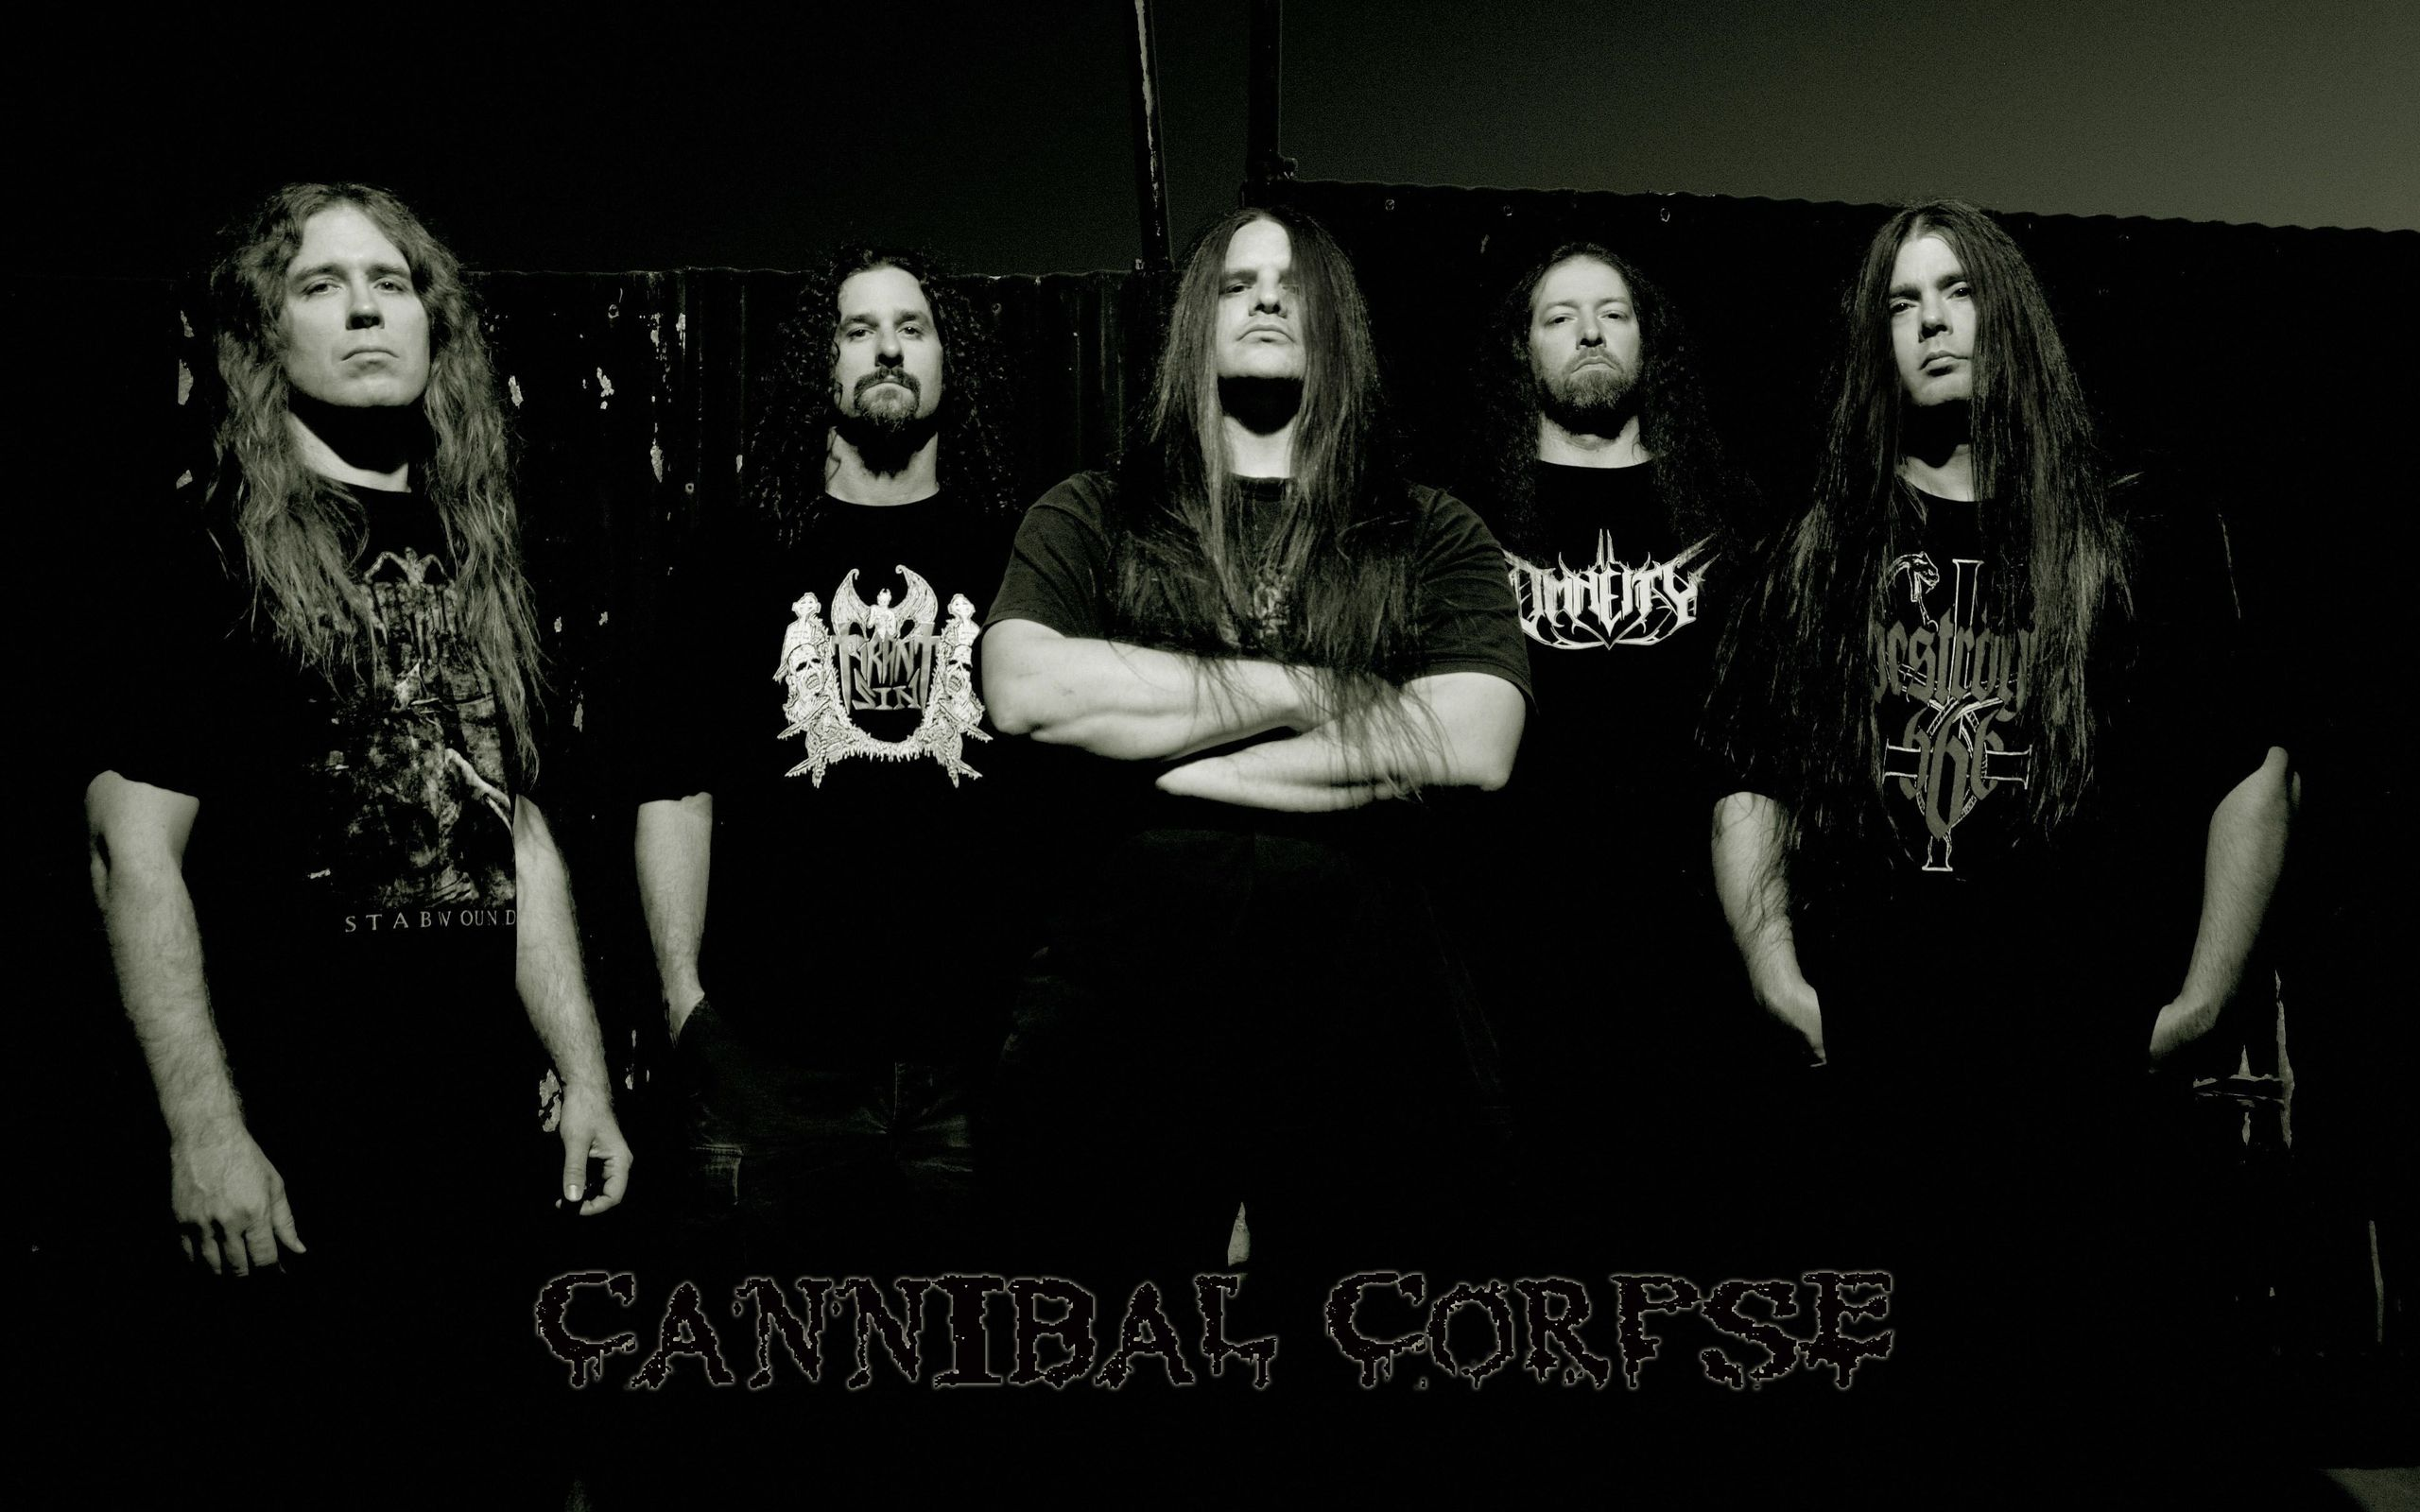 Cannibal Corpse Hd Wallpaper Background Image 2560x1600 Id